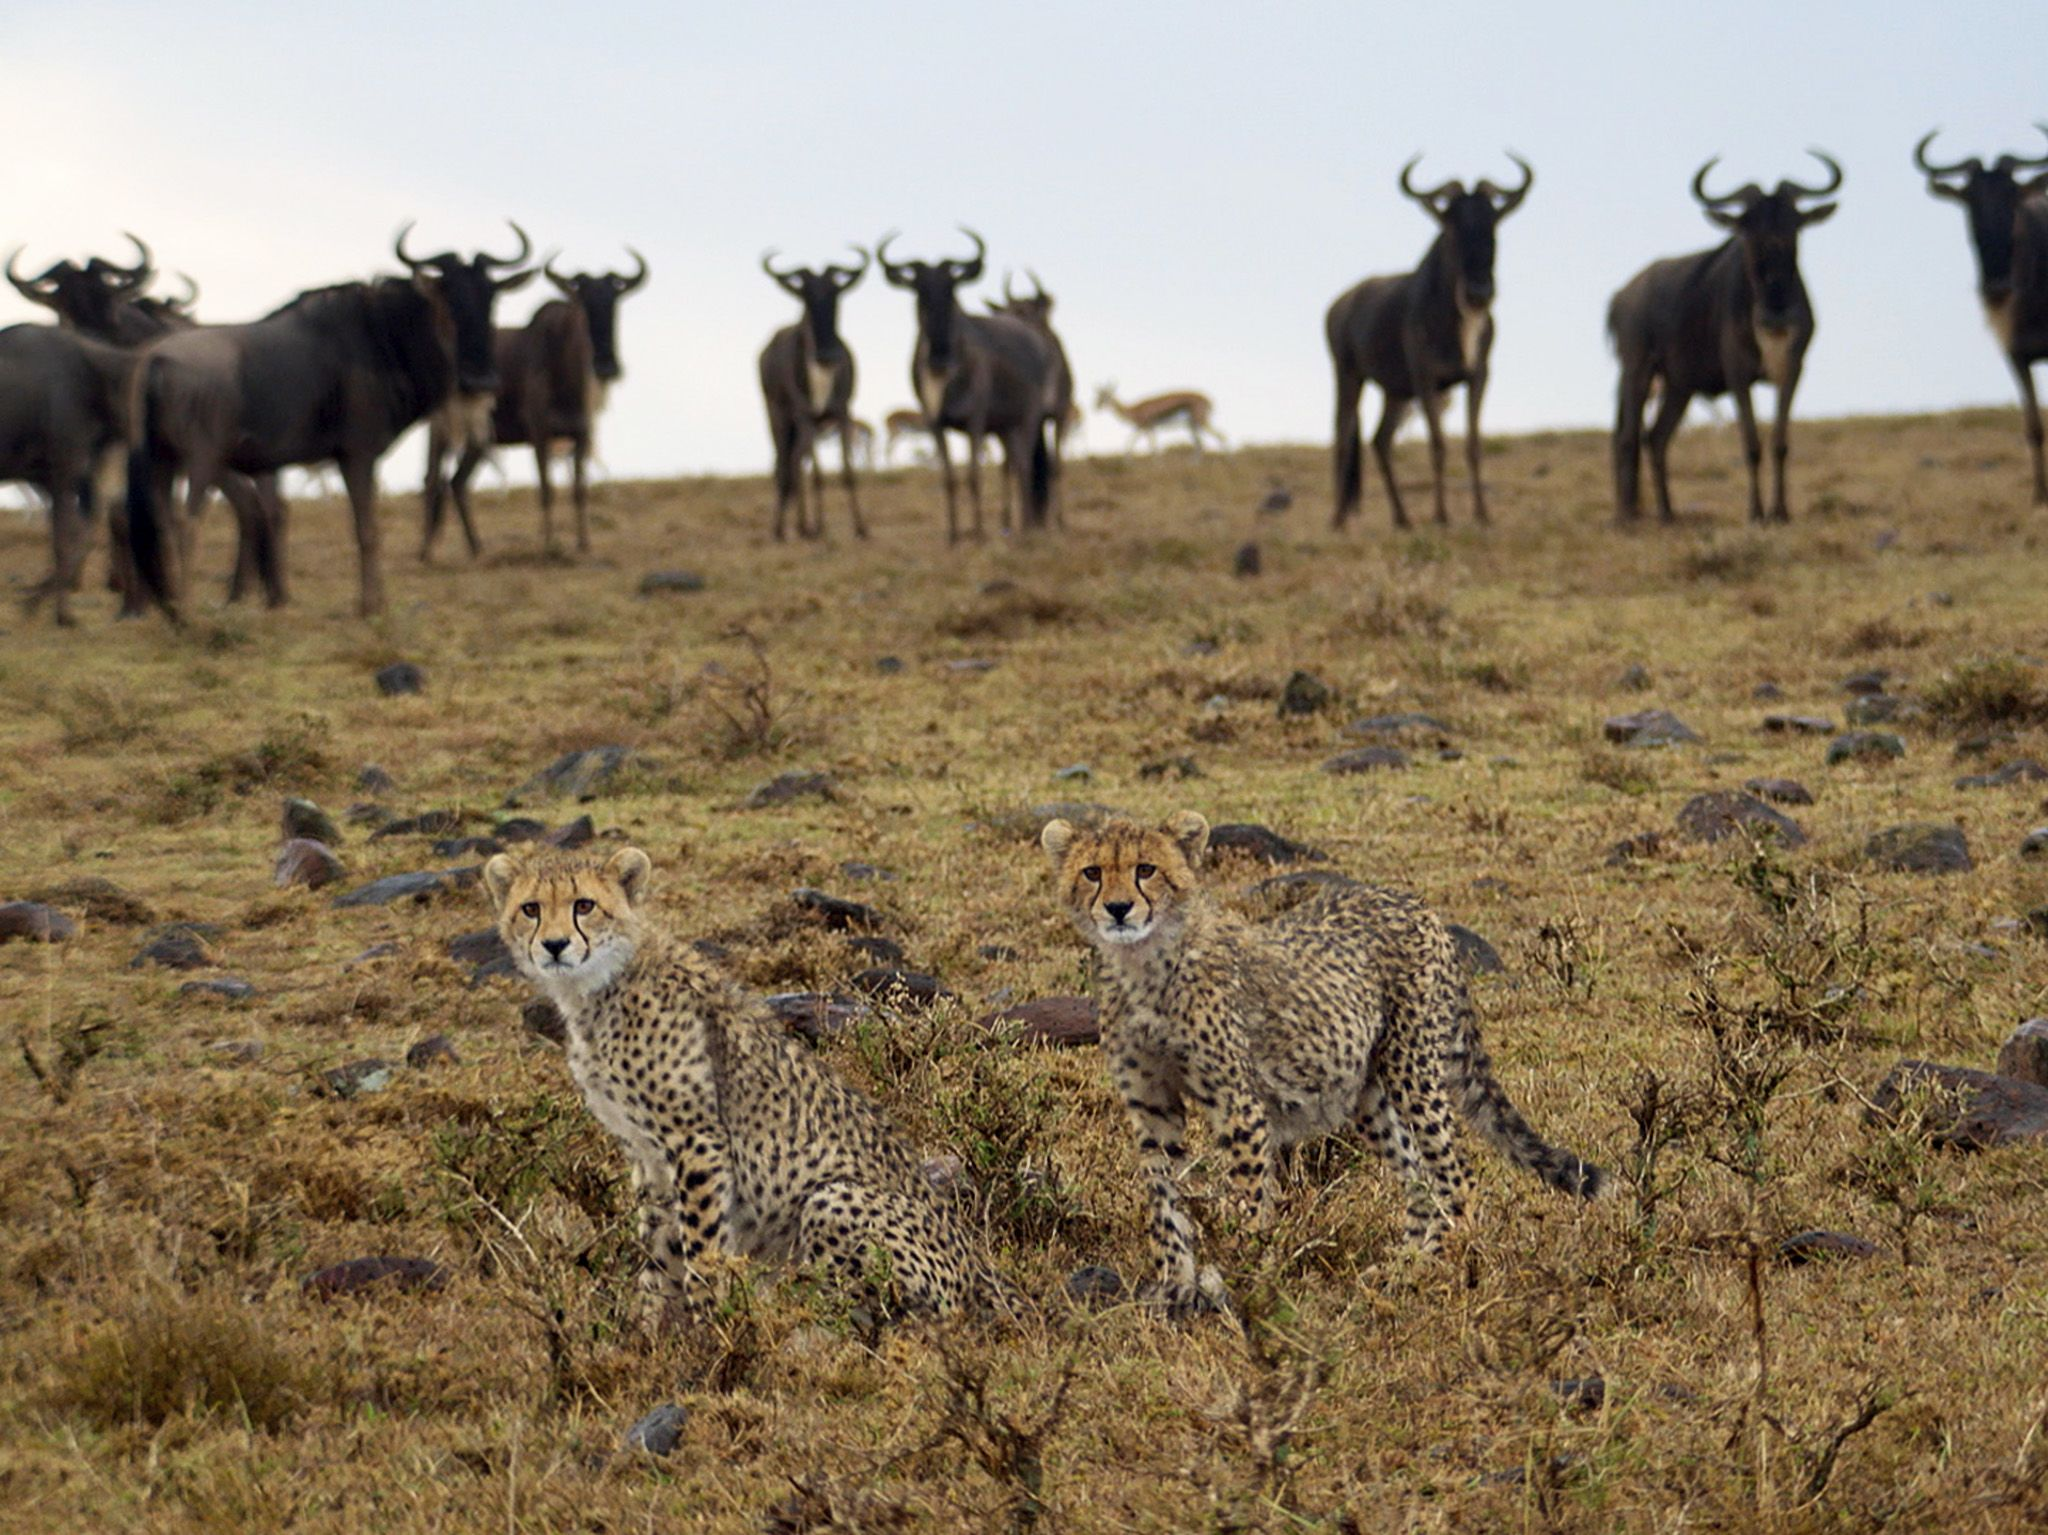 Naboisho, Kenya:  Cheetahs in foreground with wildebeest in background.  This image is from Man... [Foto del giorno - gennaio 2018]